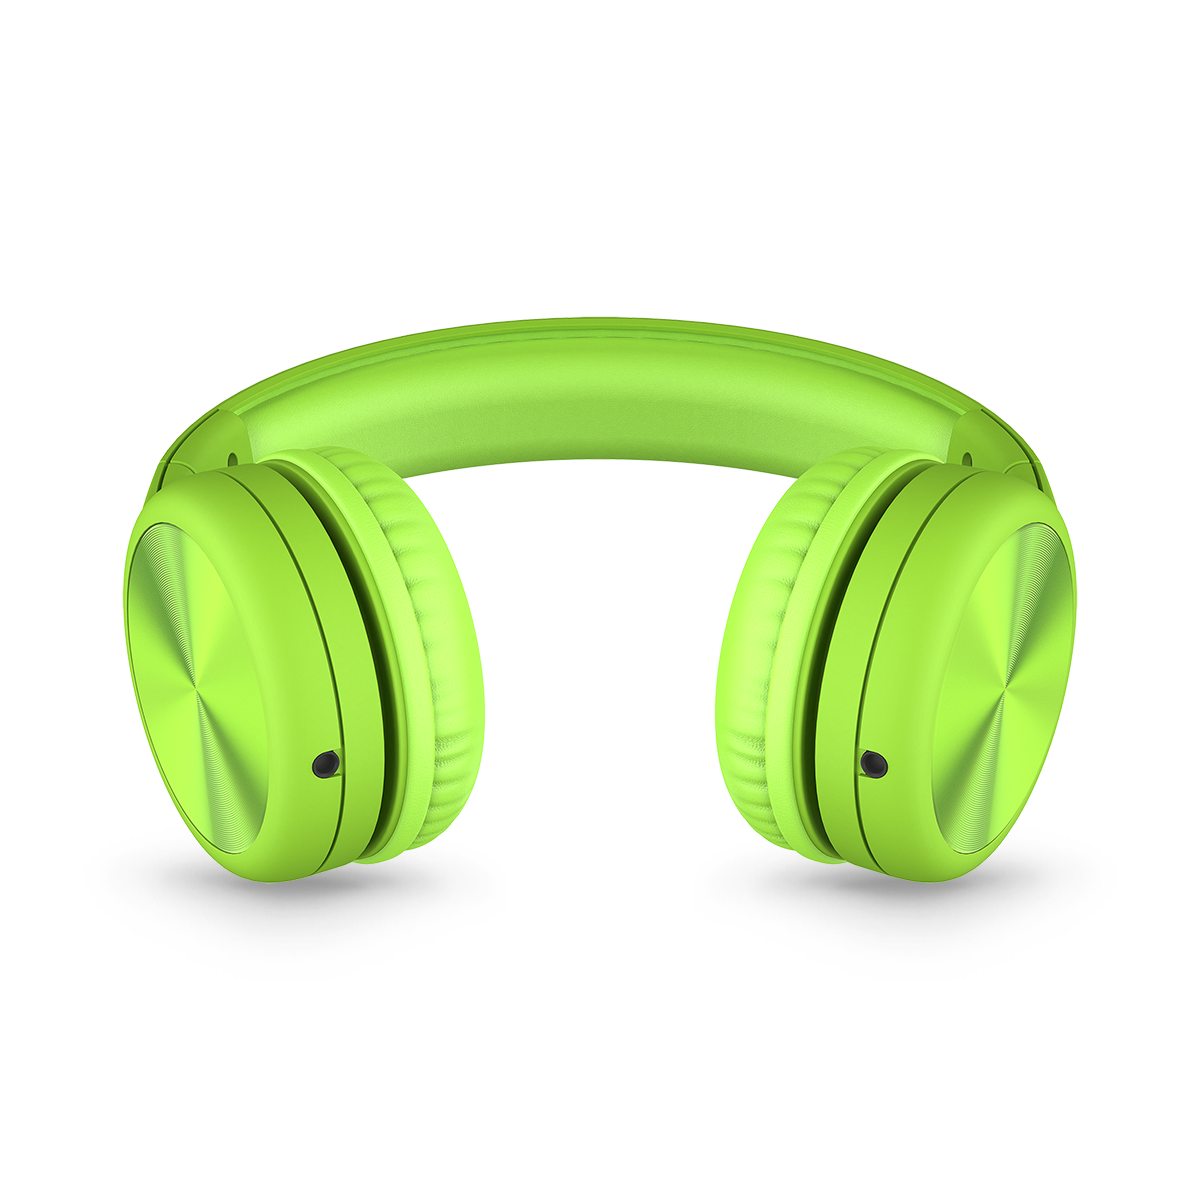 be74b6ba5df ... LilGadgets Connect+ Pro Children Wired Headphones - Green ...